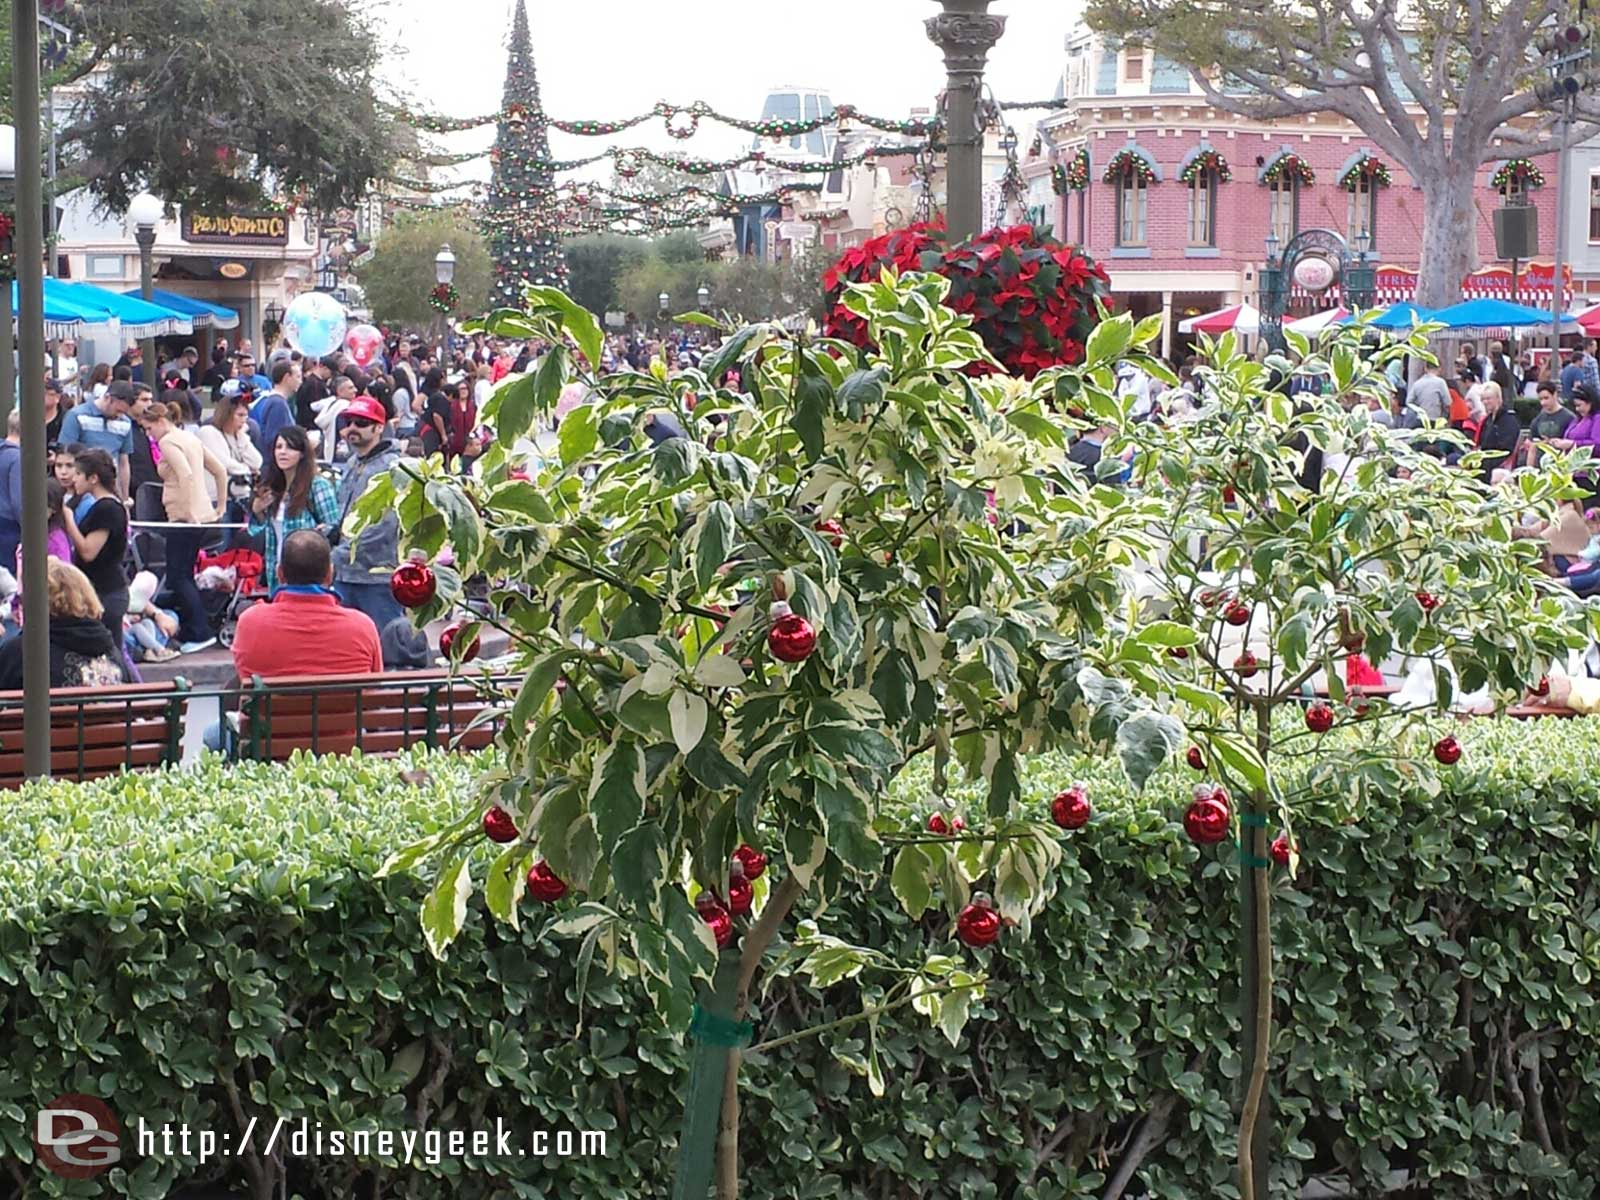 A closer look at one of the trees in the hub #Disneyland